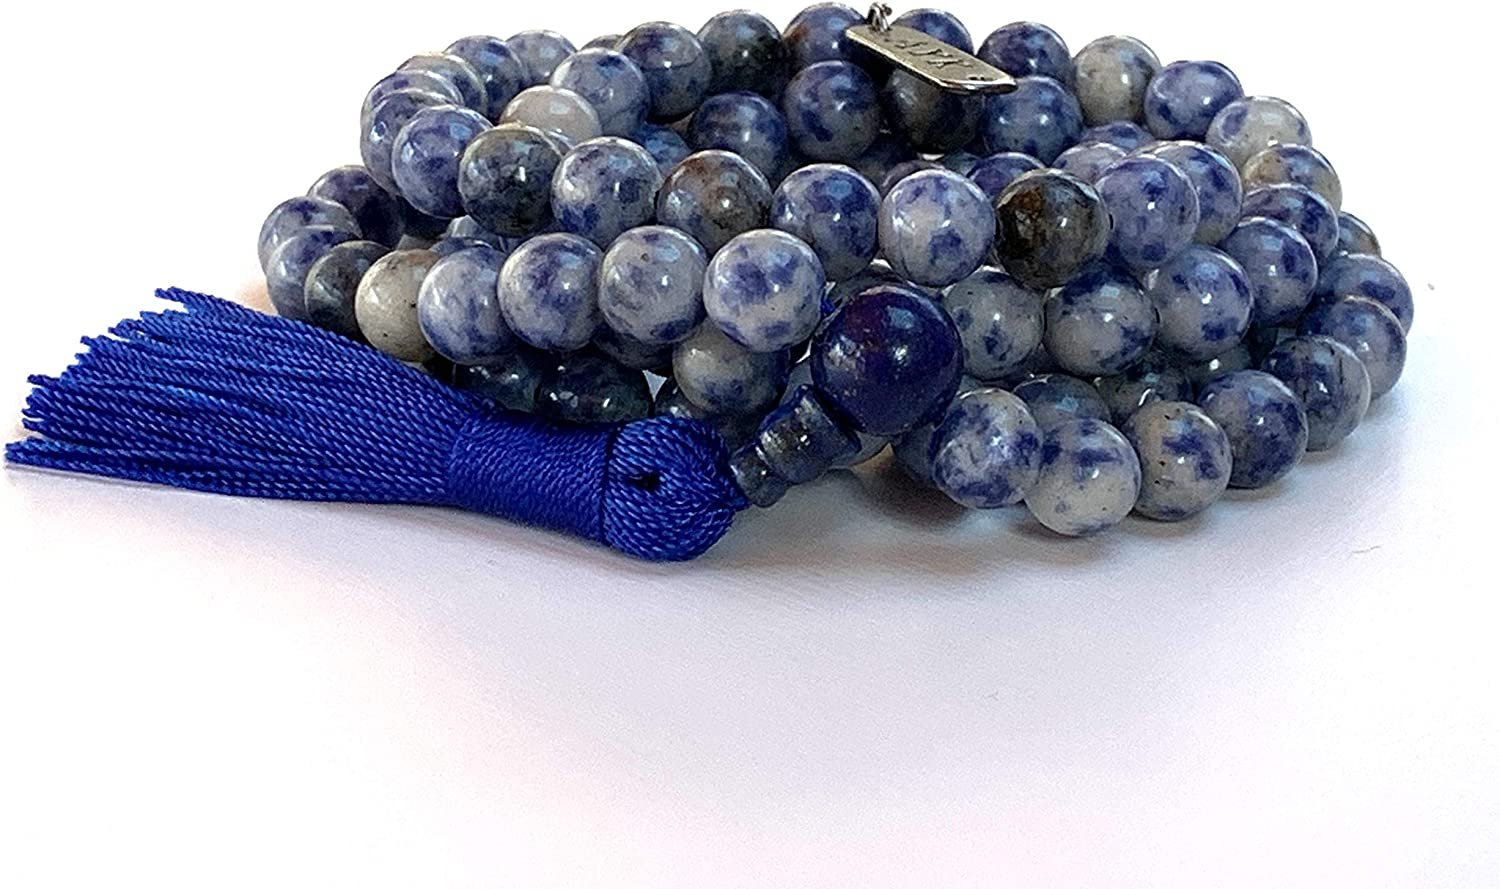 Crystals Mala Beads Necklace Reiki healing Blessed Ener stones Max 44% OFF Raleigh Mall